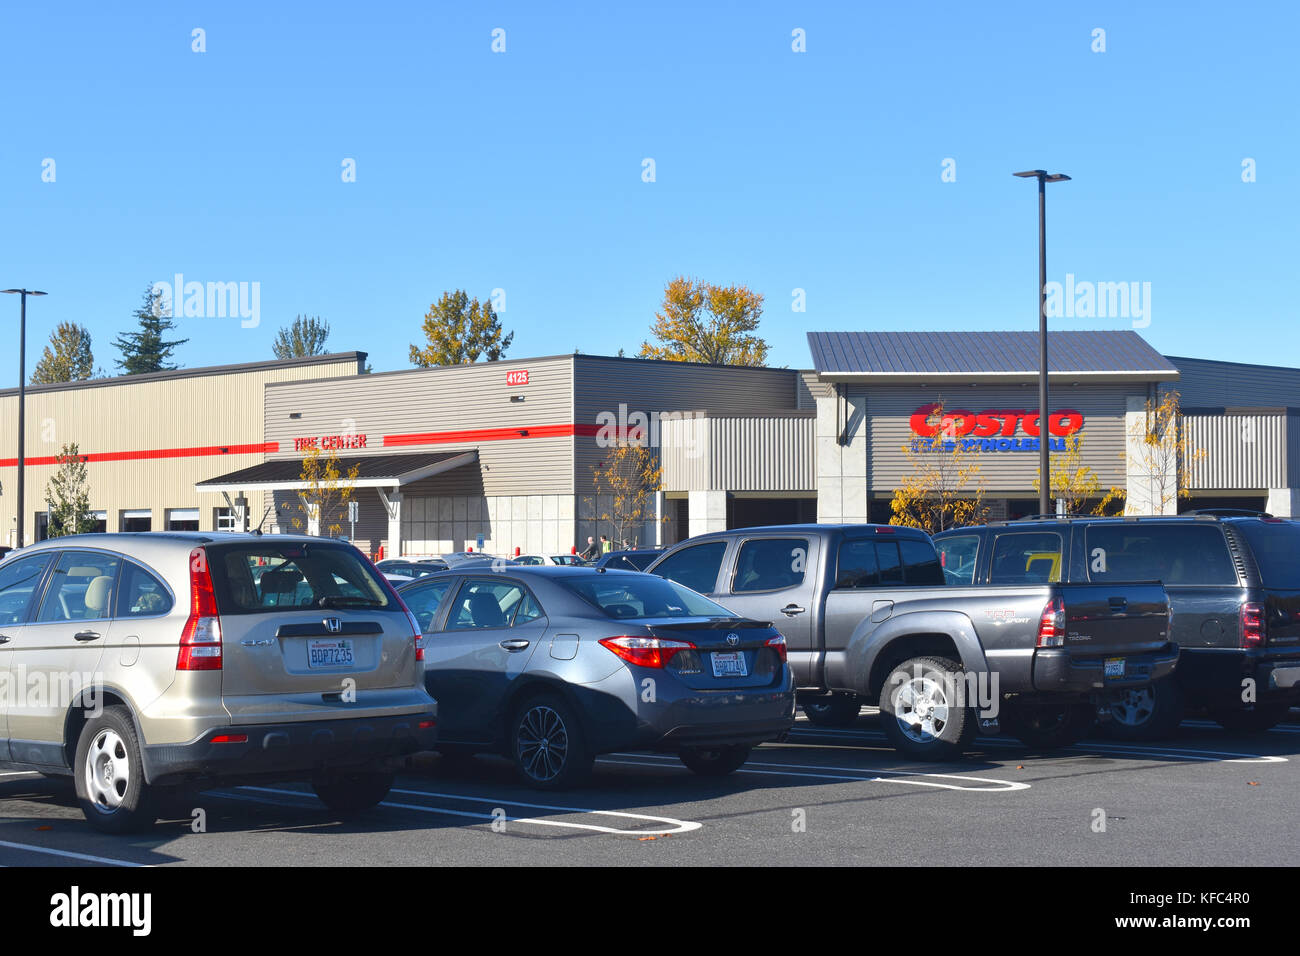 Parking lot at Costco located in Bellingham, Washington.  Editorial usage only. - Stock Image